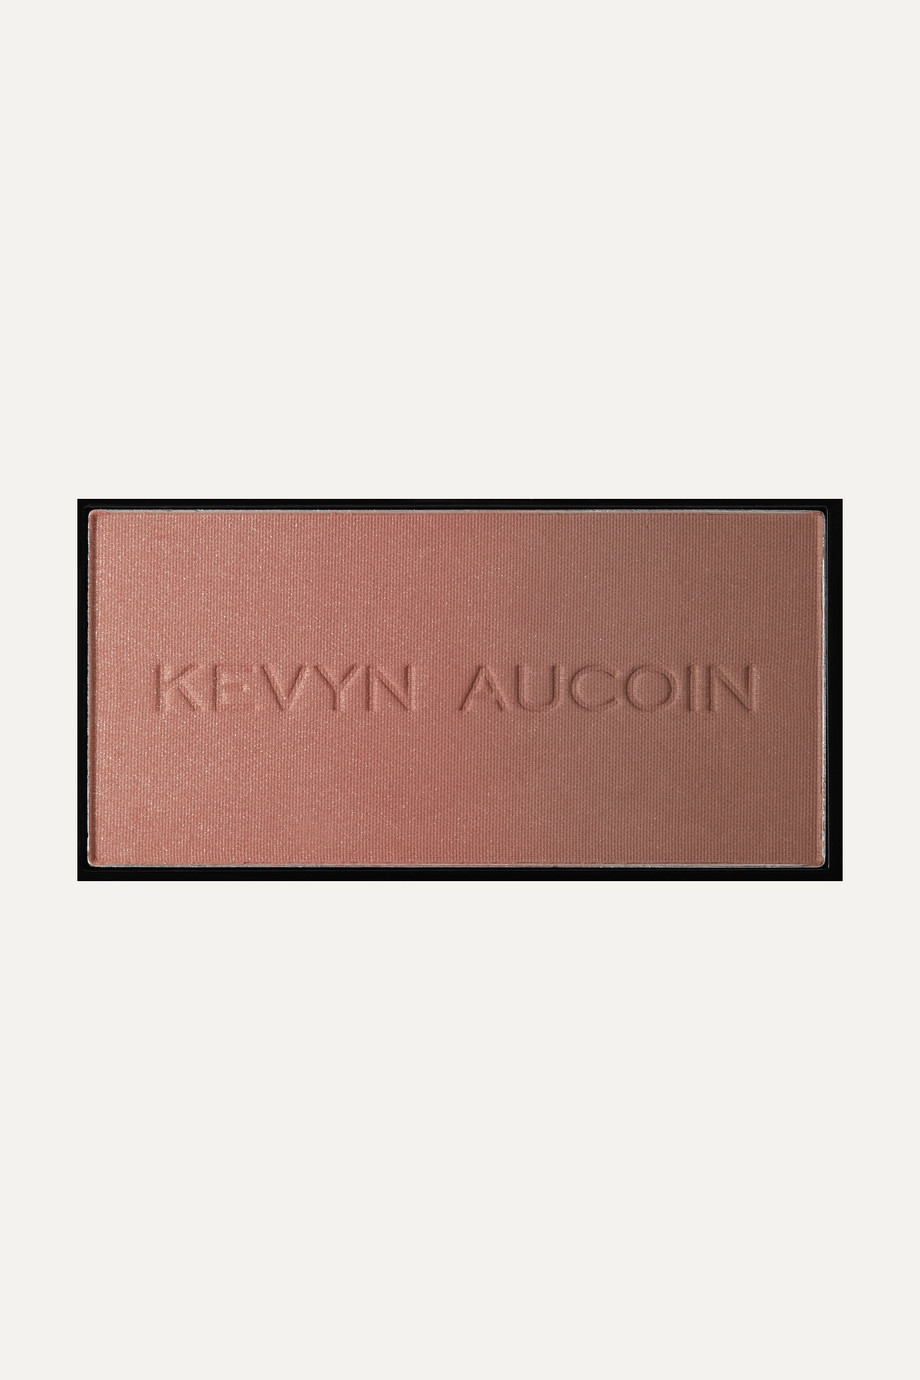 Kevyn Aucoin The Neo Bronzer - Sunrise